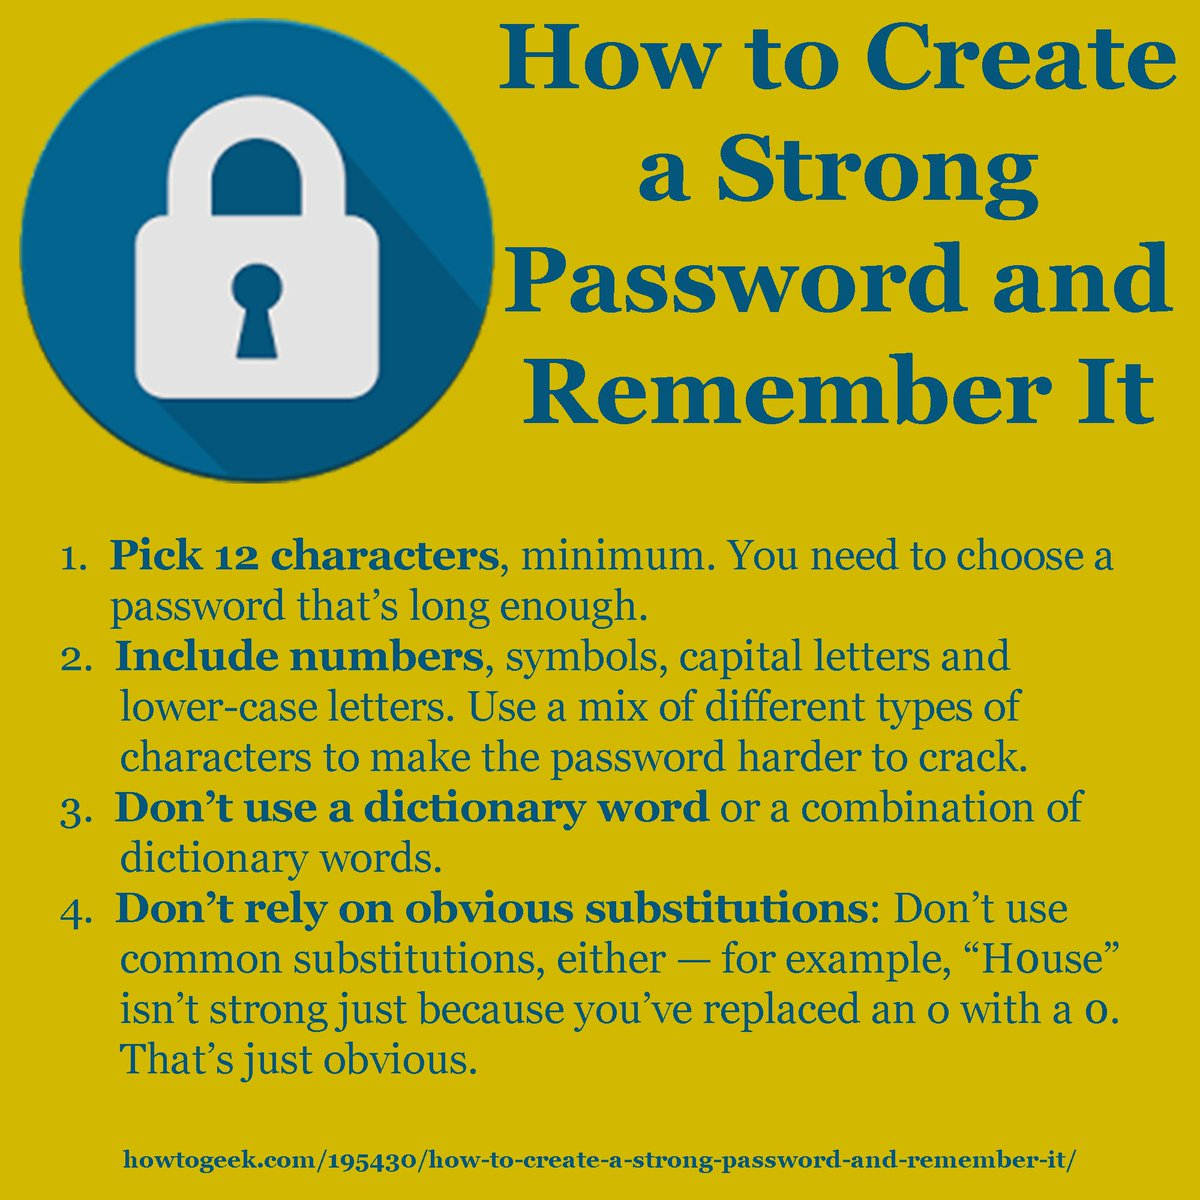 #cybersecuritymonth may be over, but with #cybermonday coming having a strong password is still important. #tips #security #bbb<br>http://pic.twitter.com/6vdY5aHIgA